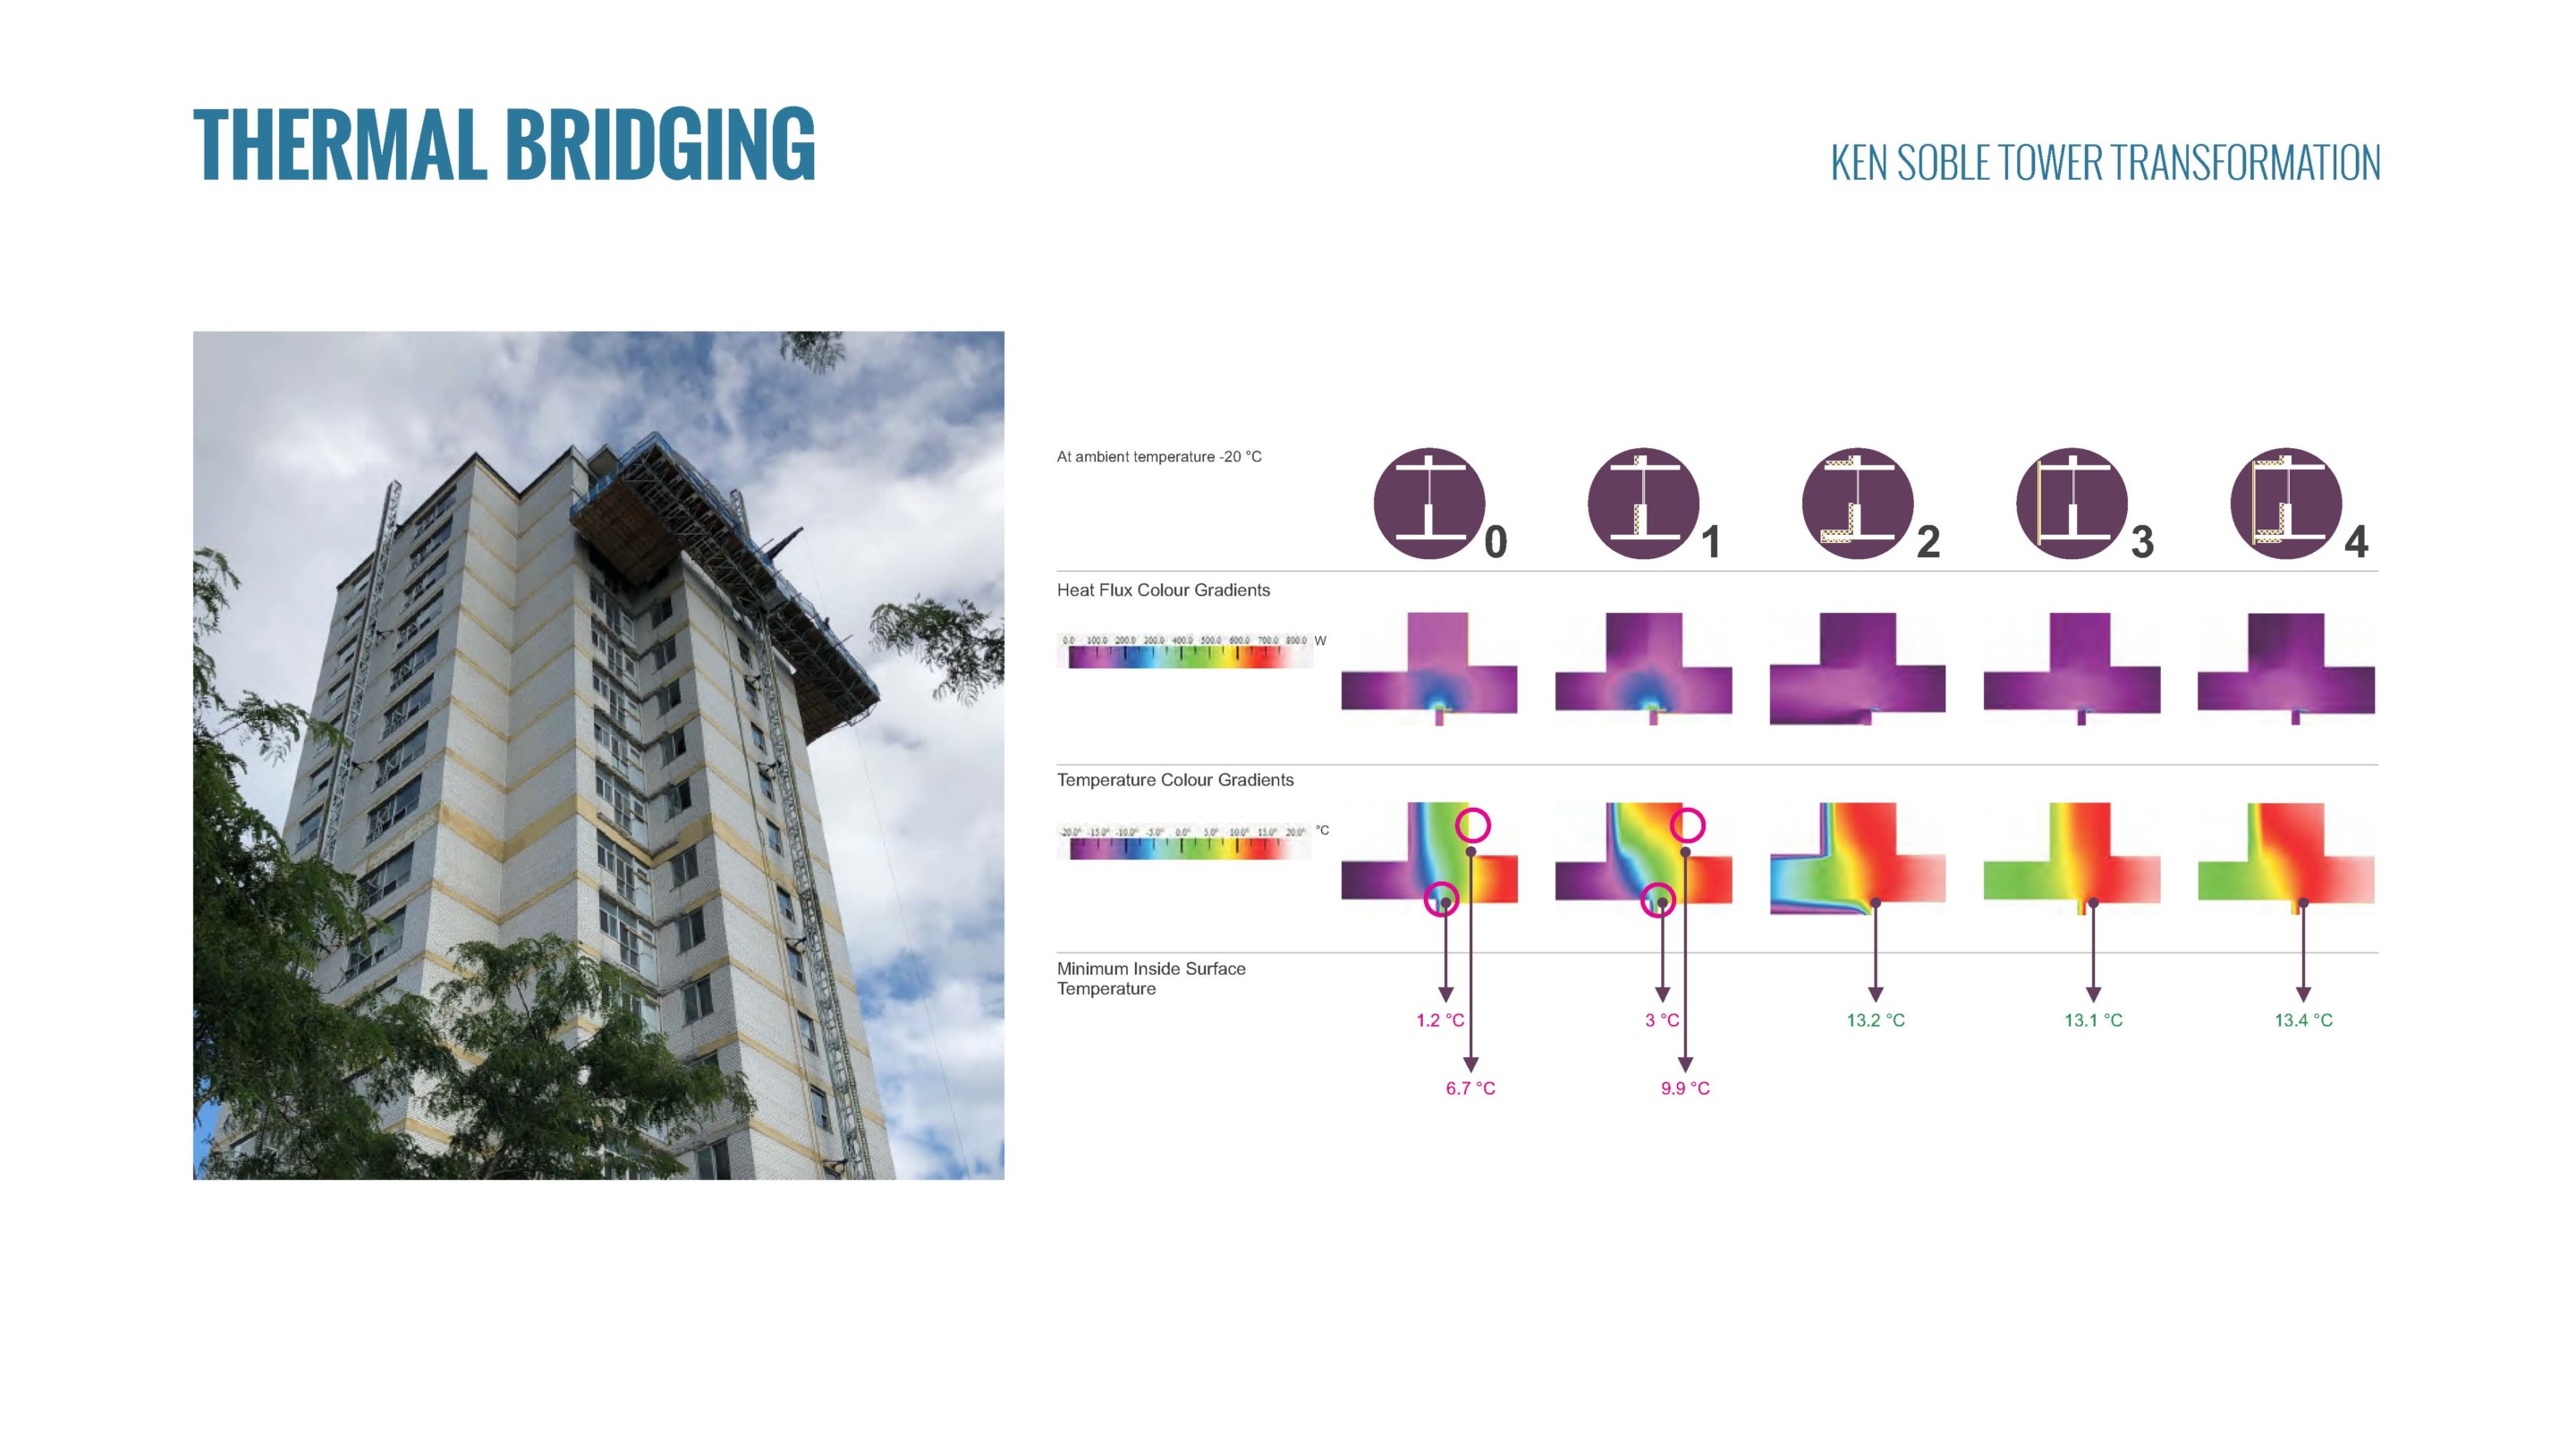 Diagram of thermal bridging on a tower facade